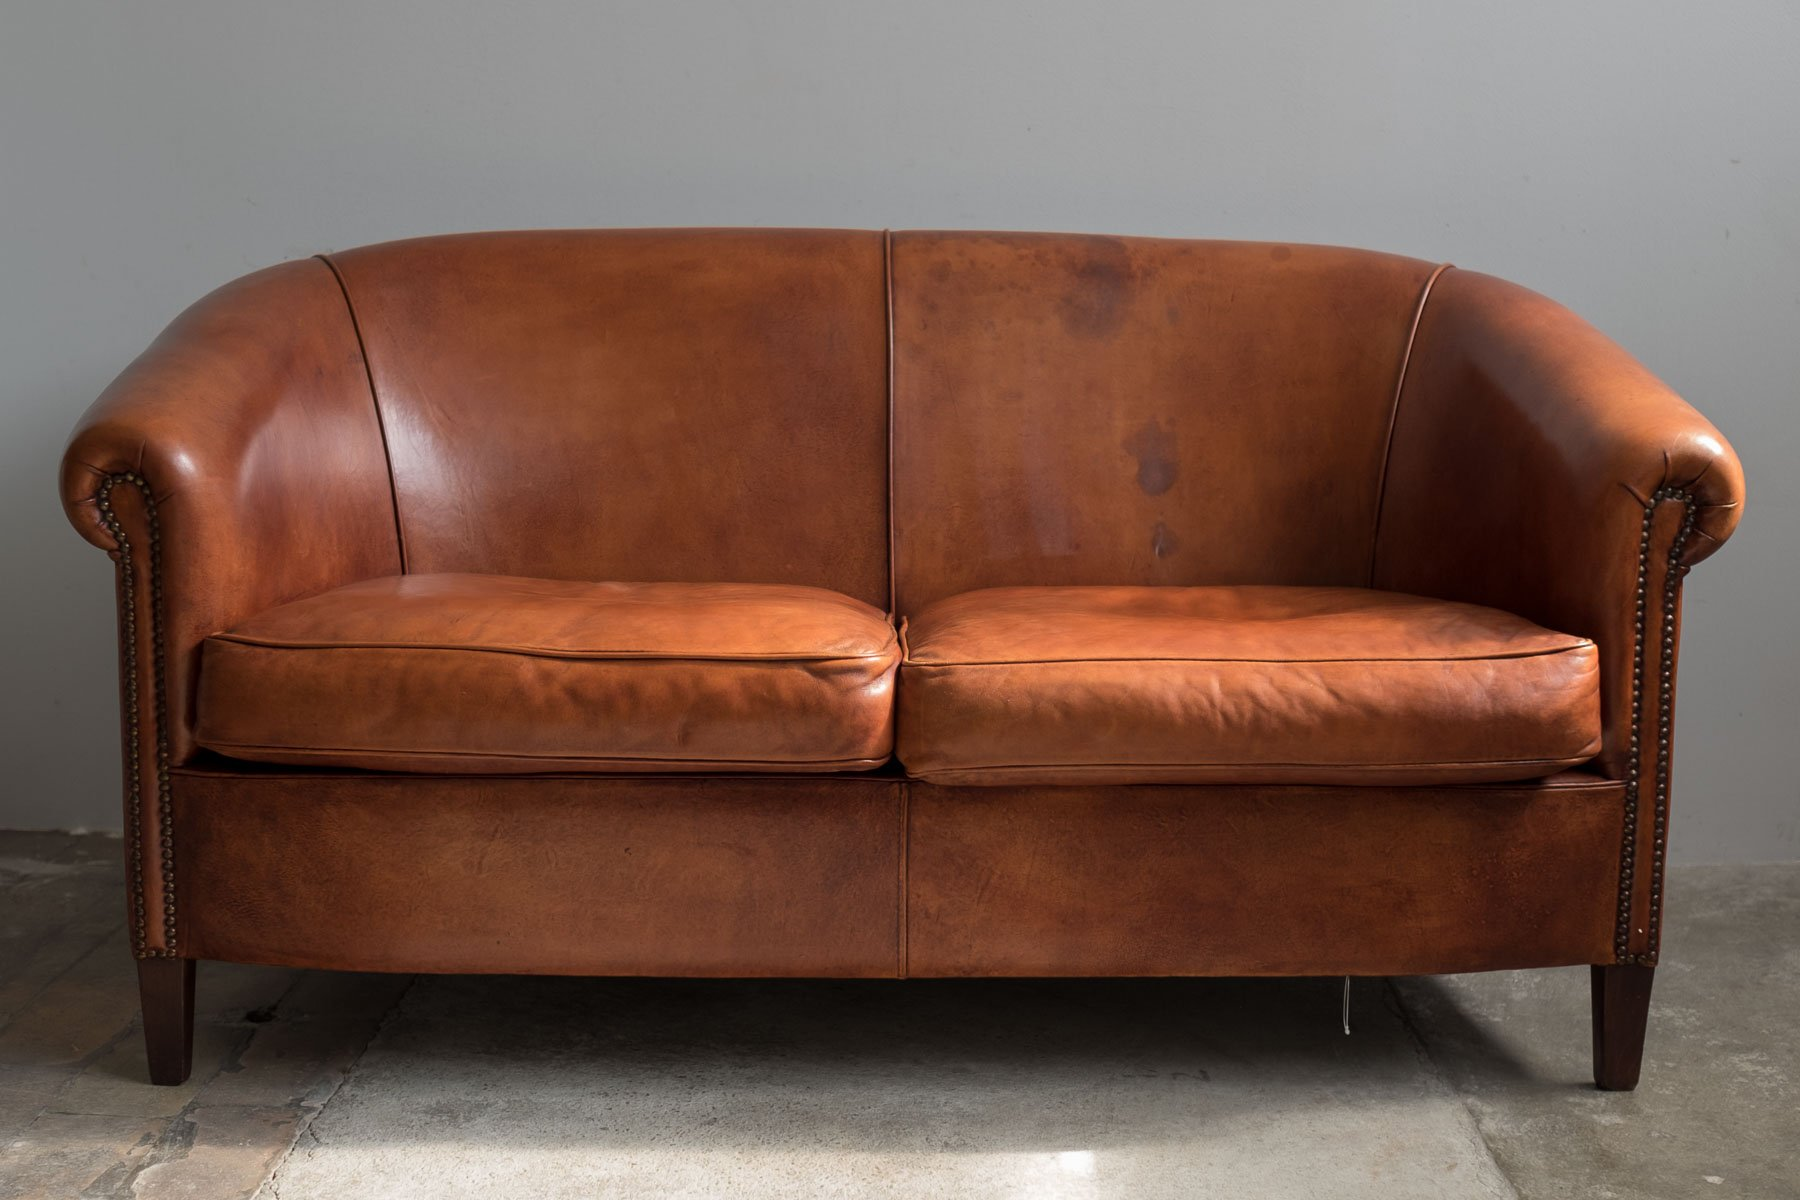 Vintage Leather Two Seater Sofa 1970s For Sale At Pamono